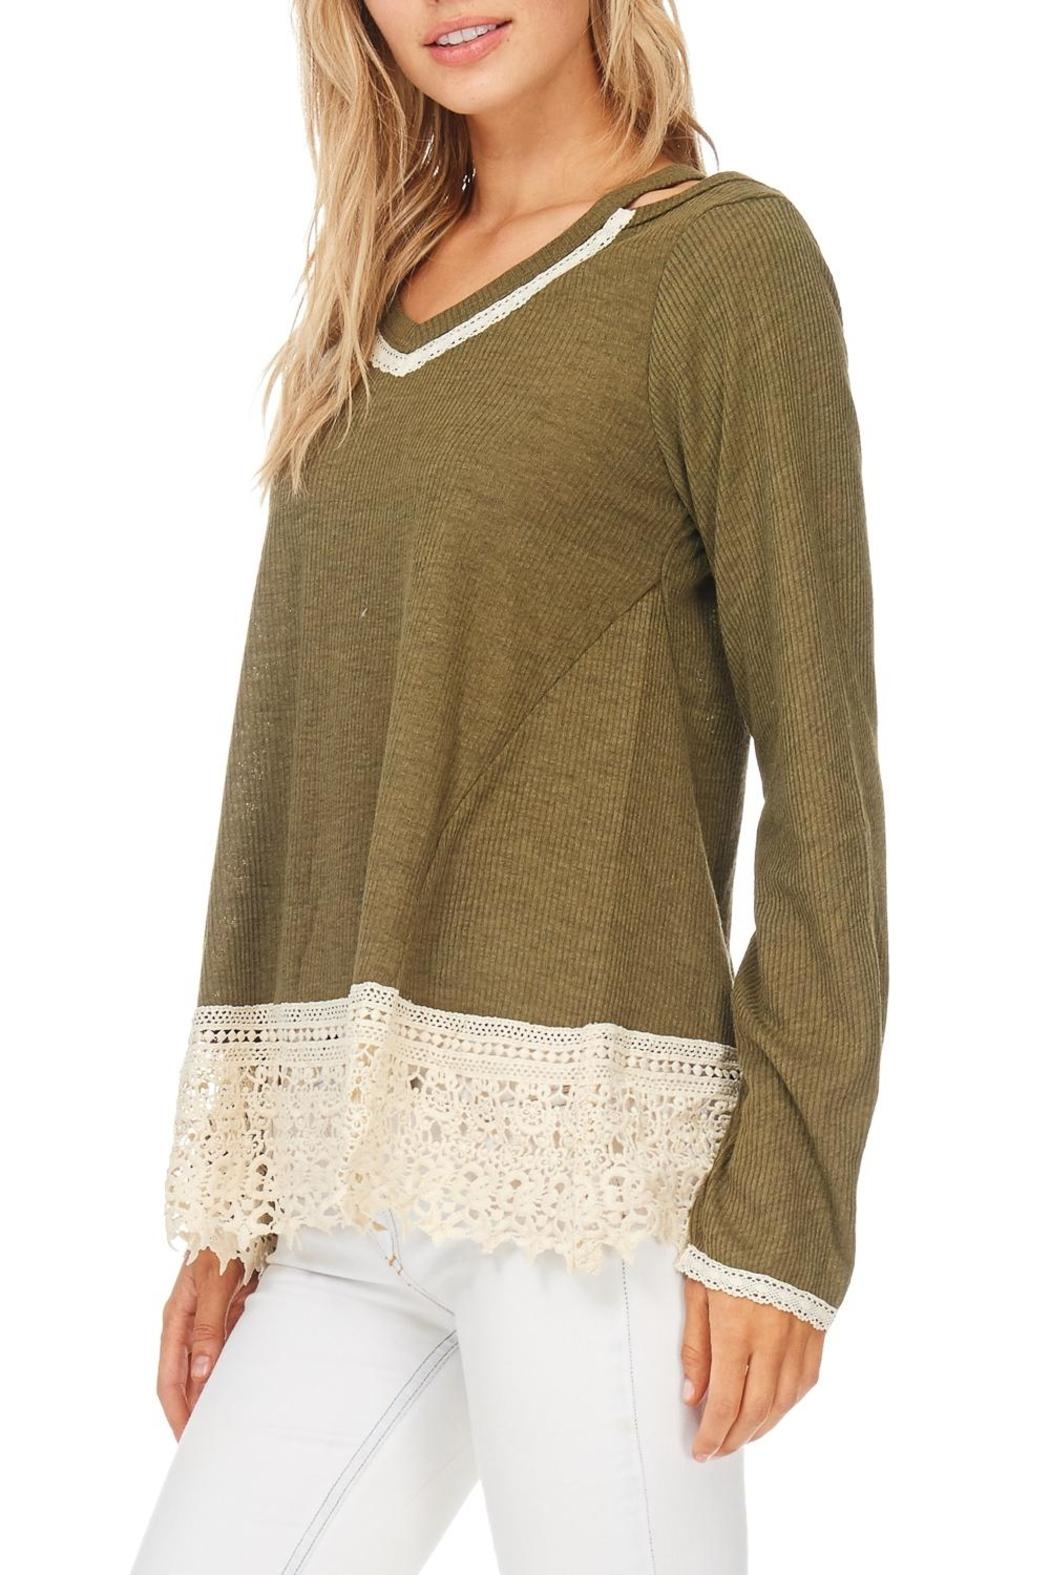 Hem & Thread Olive Cold Shoulder Top - Main Image